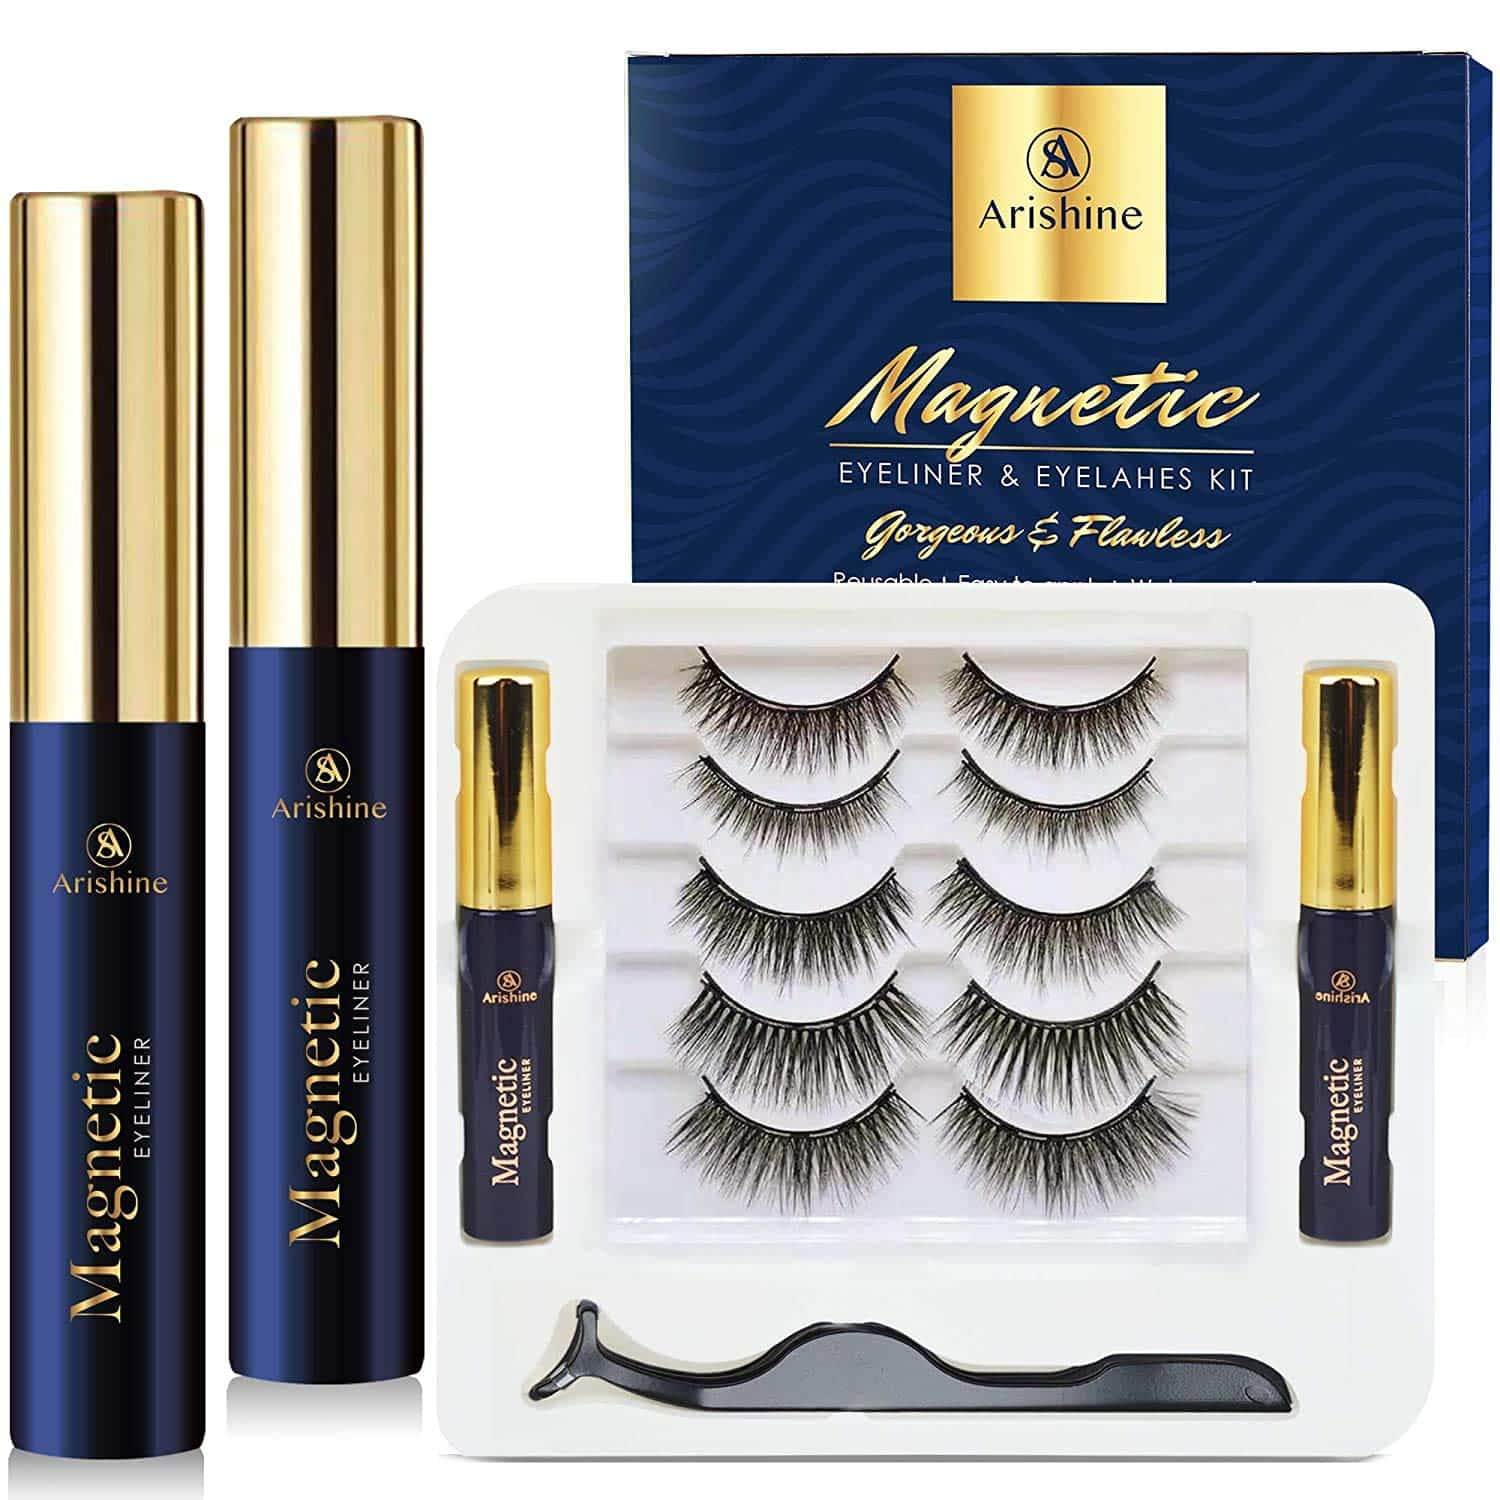 Arishine 3D Magnetic Eyelashes Kit